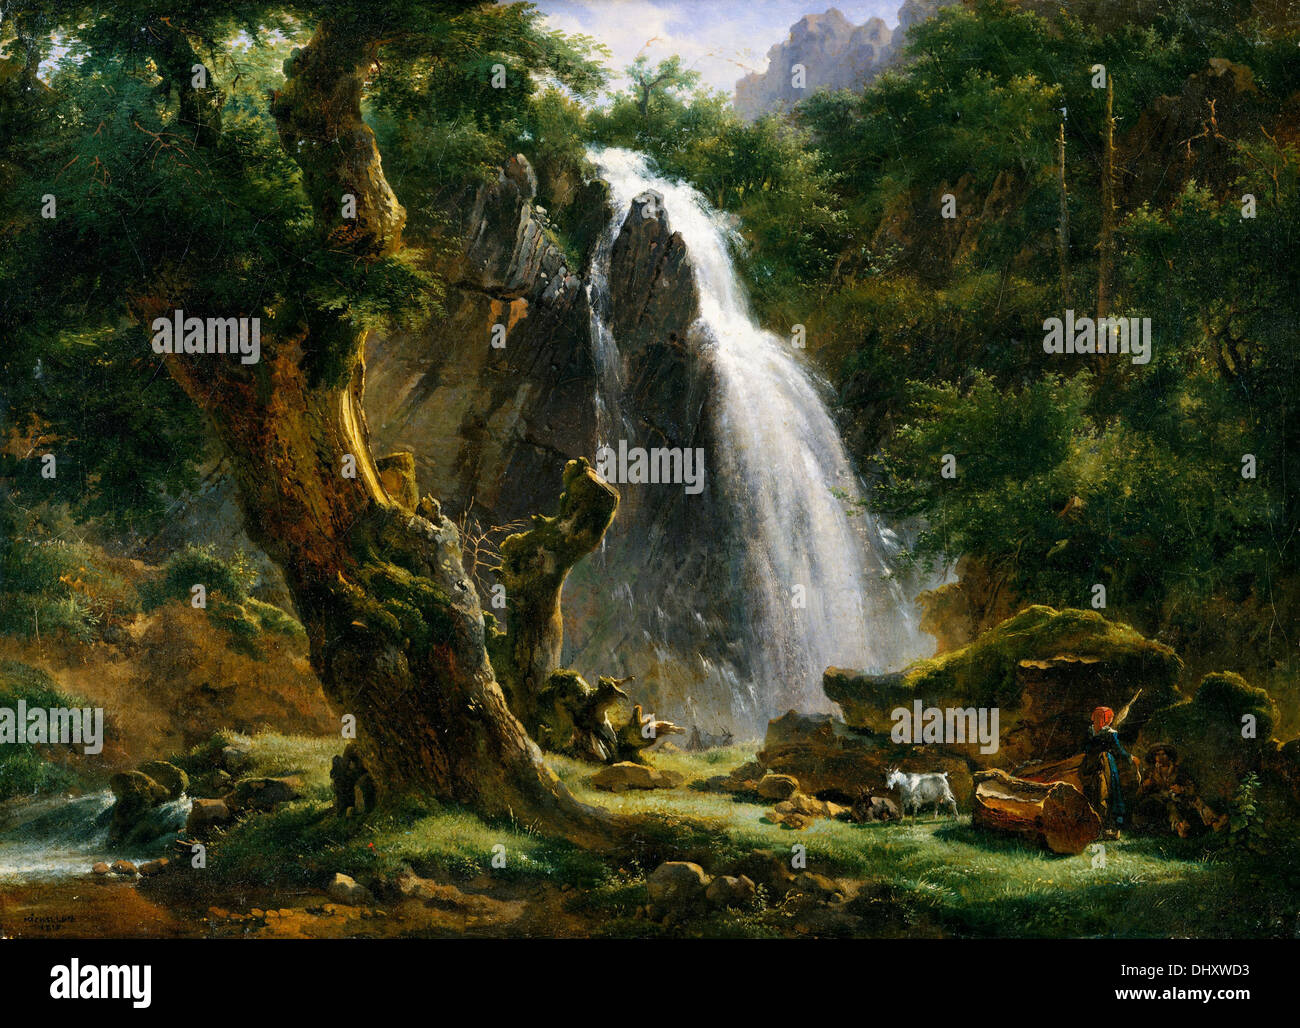 Waterfall at Mont-Dore - by Achille-Etna Michallon, 1818 - Stock Image